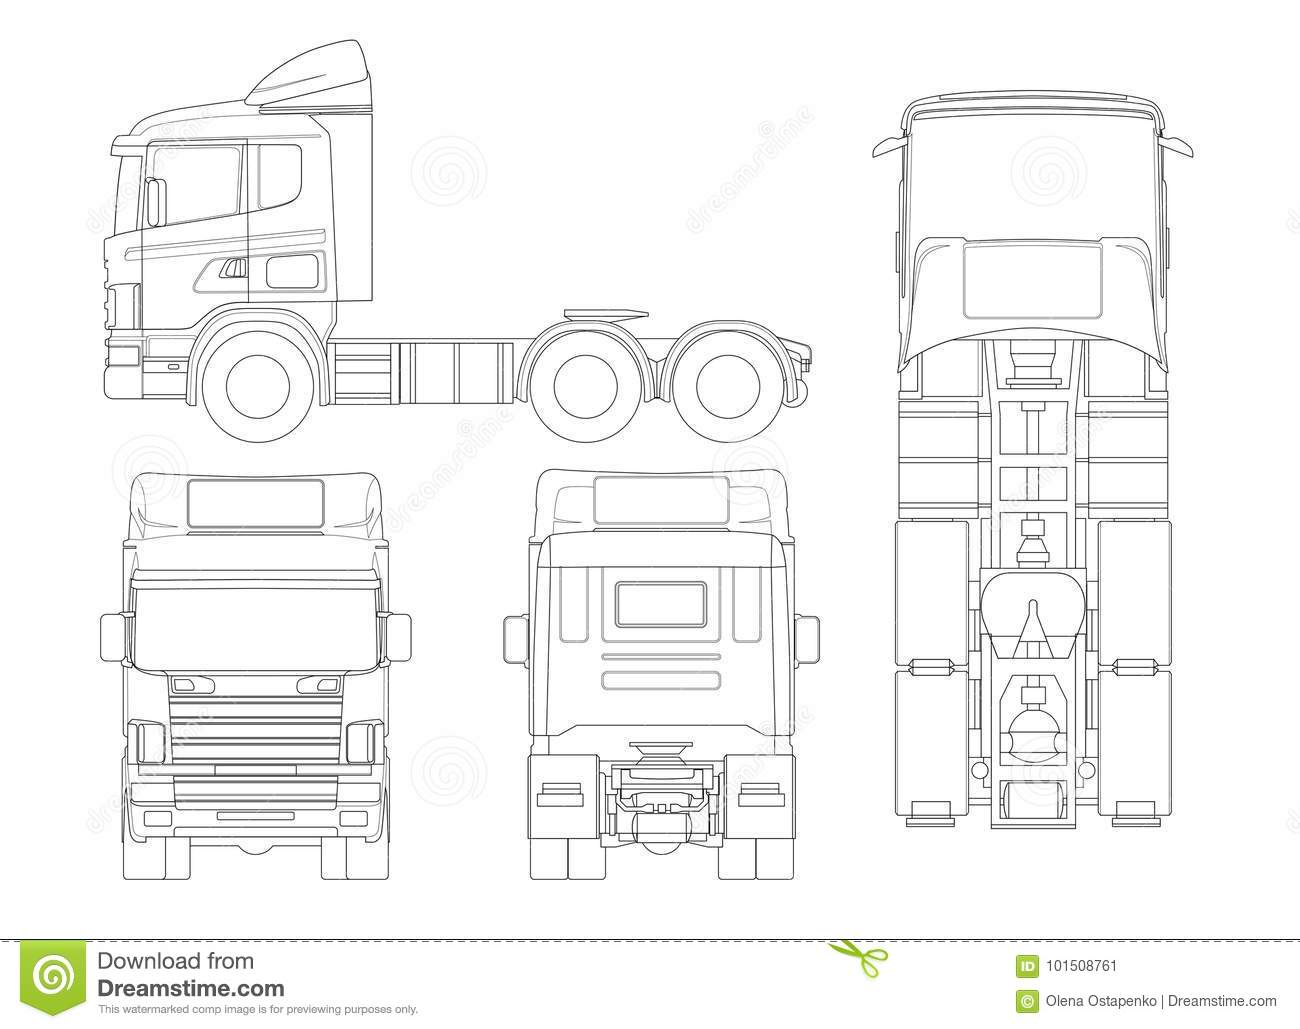 Trailer Truck Diagram Outline Wiring Diagrams Radio Frequency Circuit Design Repost Avaxhome Tractor Or Semi In Combination Of A Rh Dreamstime Com Ol